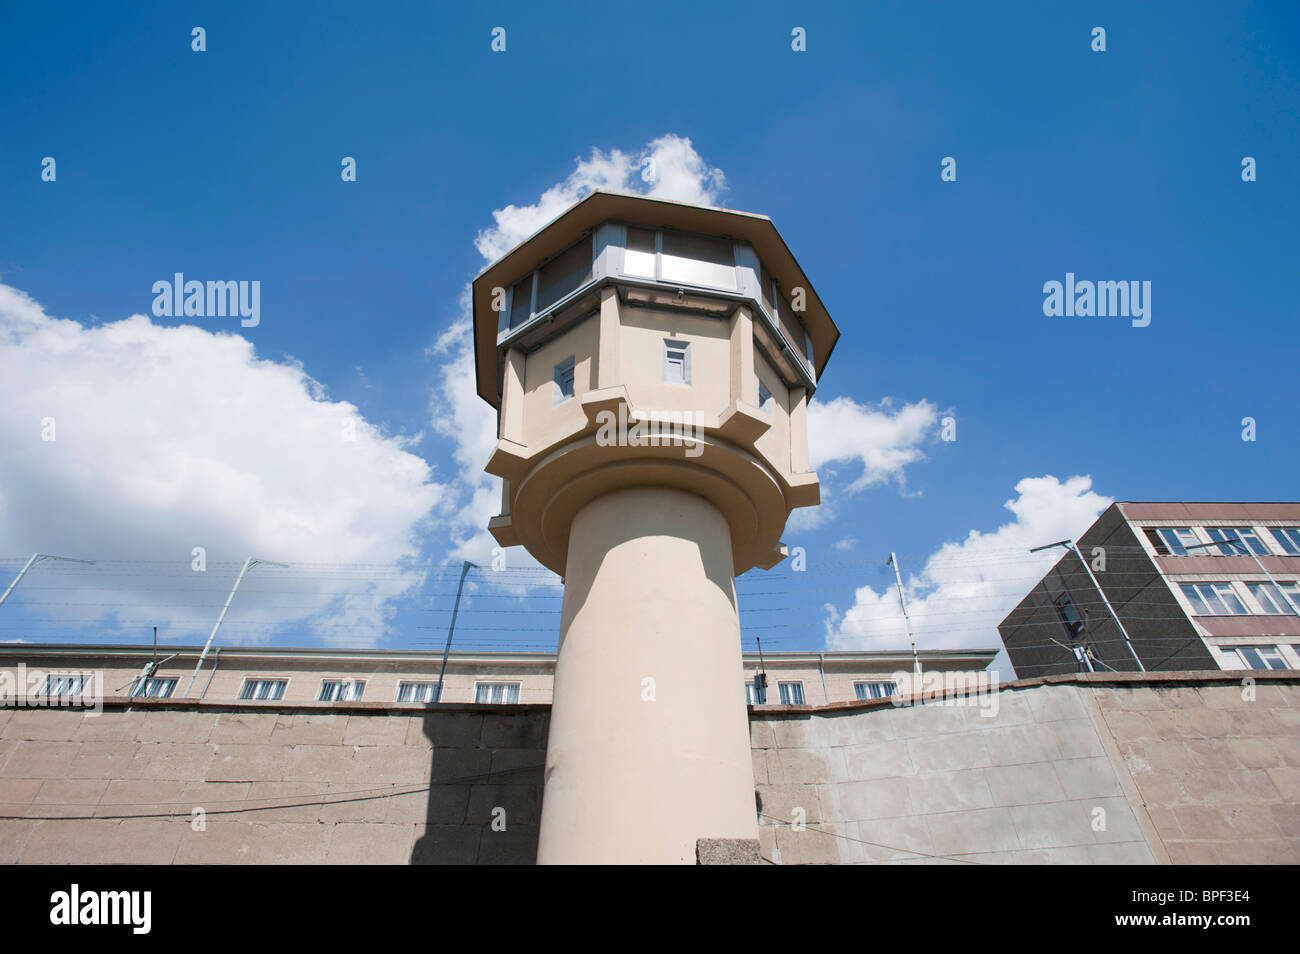 Guard tower at former East German state secret security police or STASI prison at Hohenschönhausen in Berlin - Stock Image